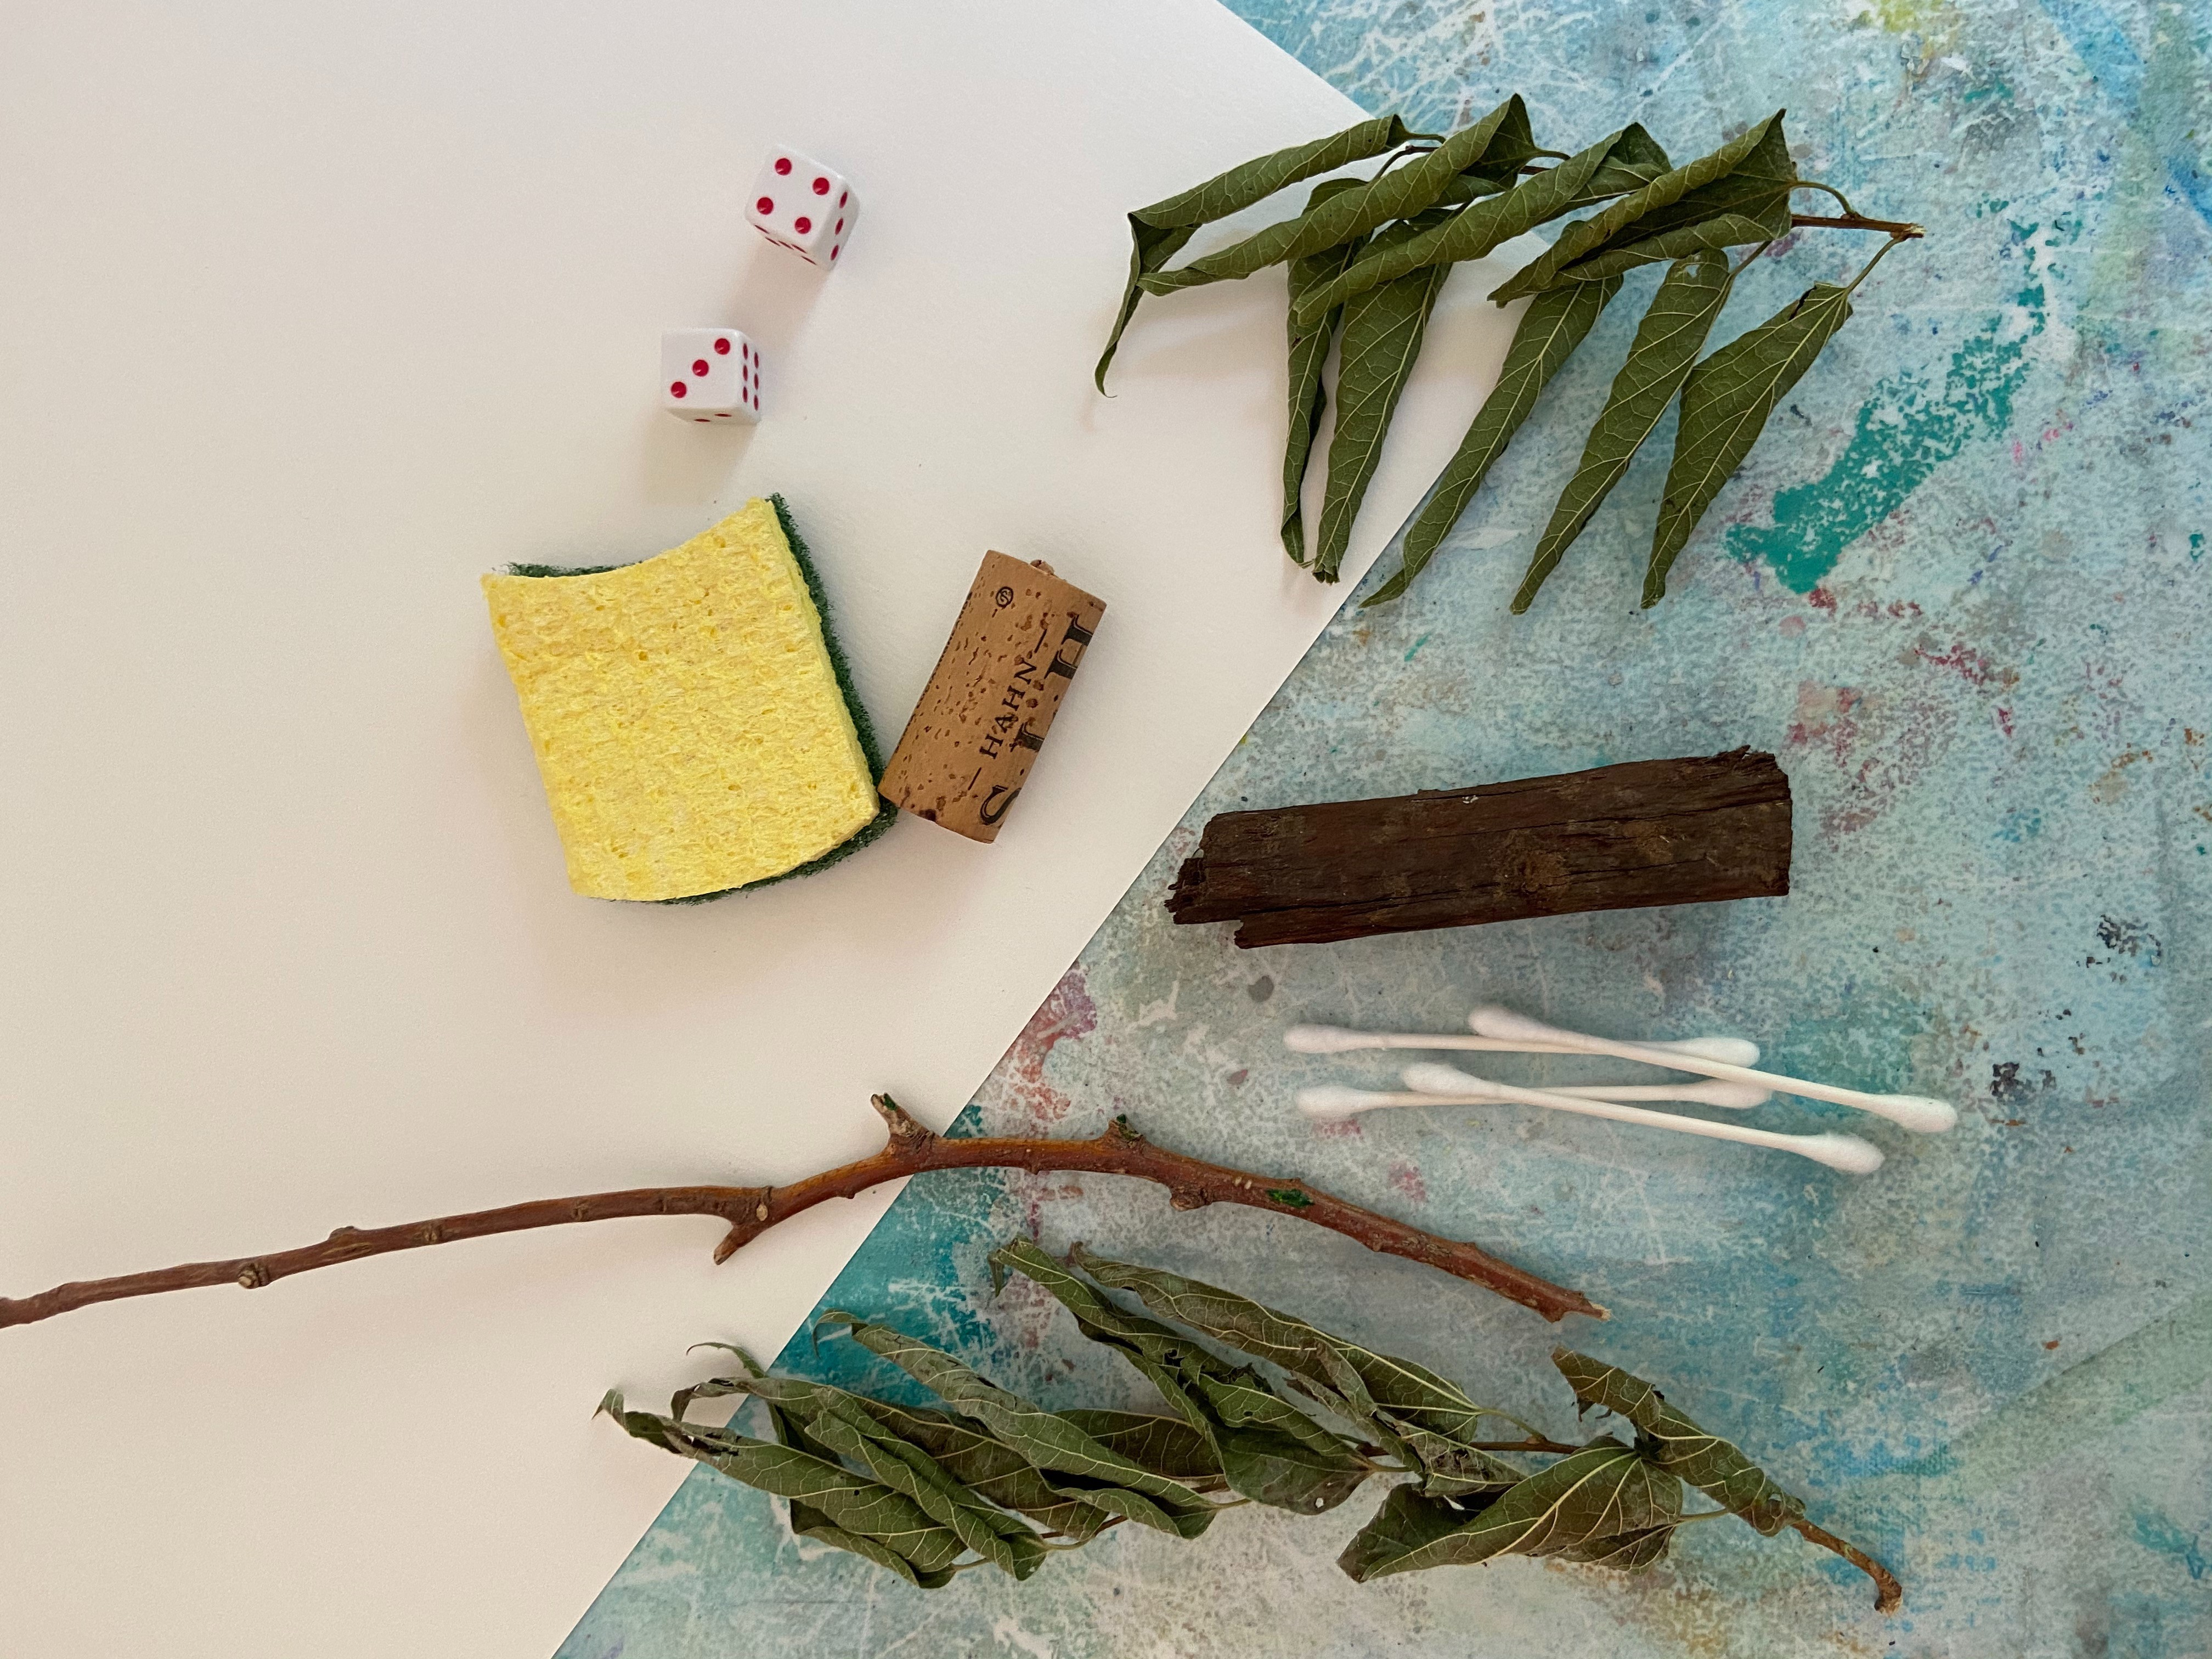 Household art supplies, including Q-tips, a sponge, a wine cork, a pair of dice, leaves and a twig